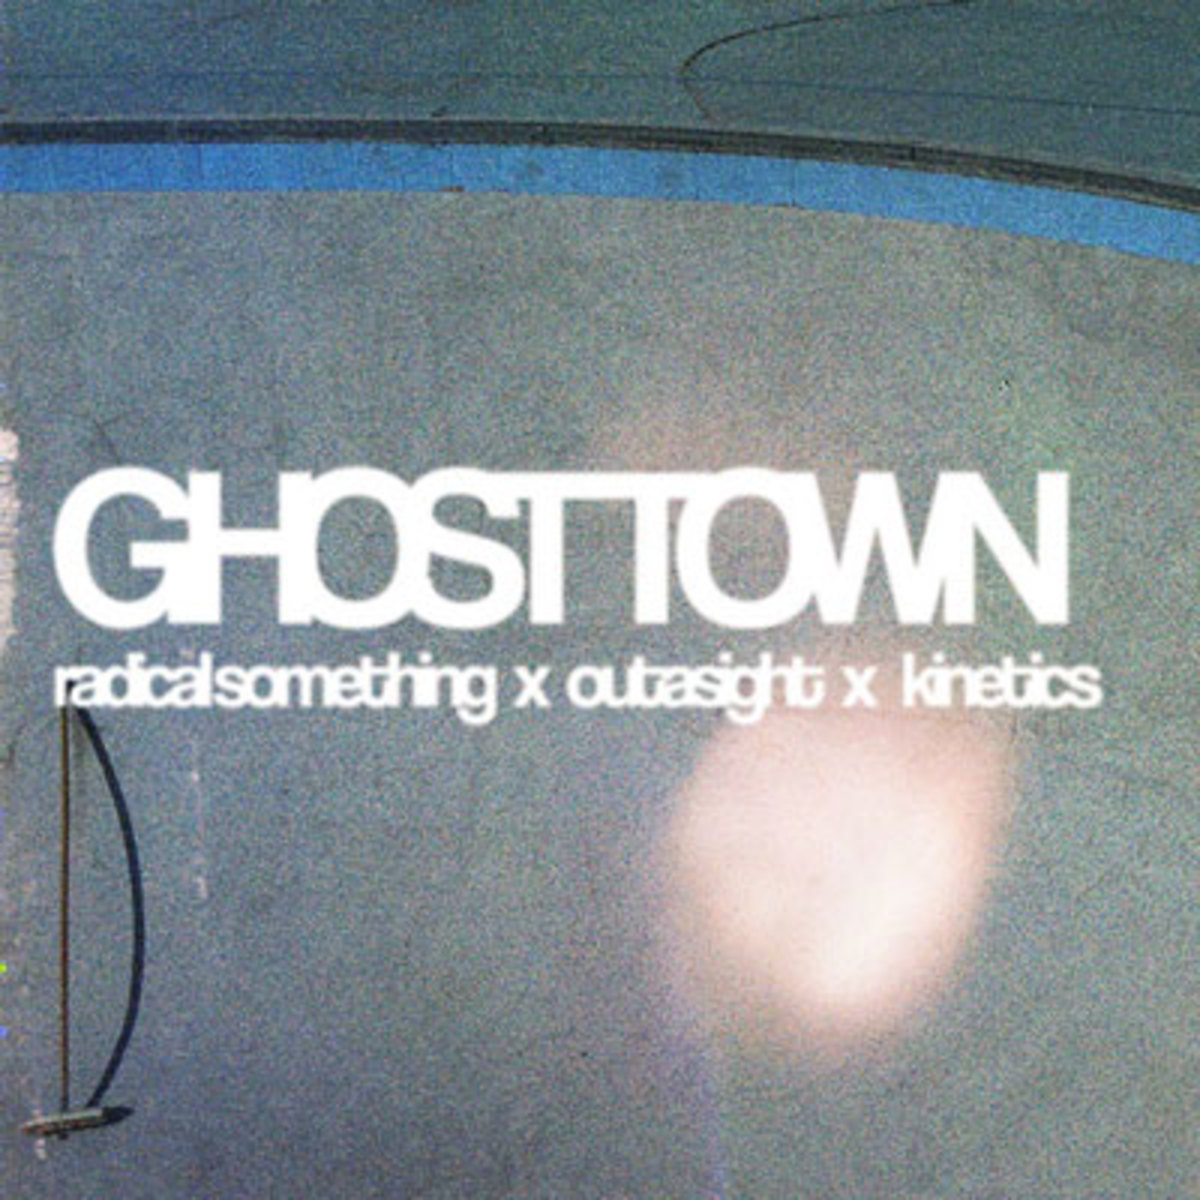 radicalsomething-ghosttown.jpg